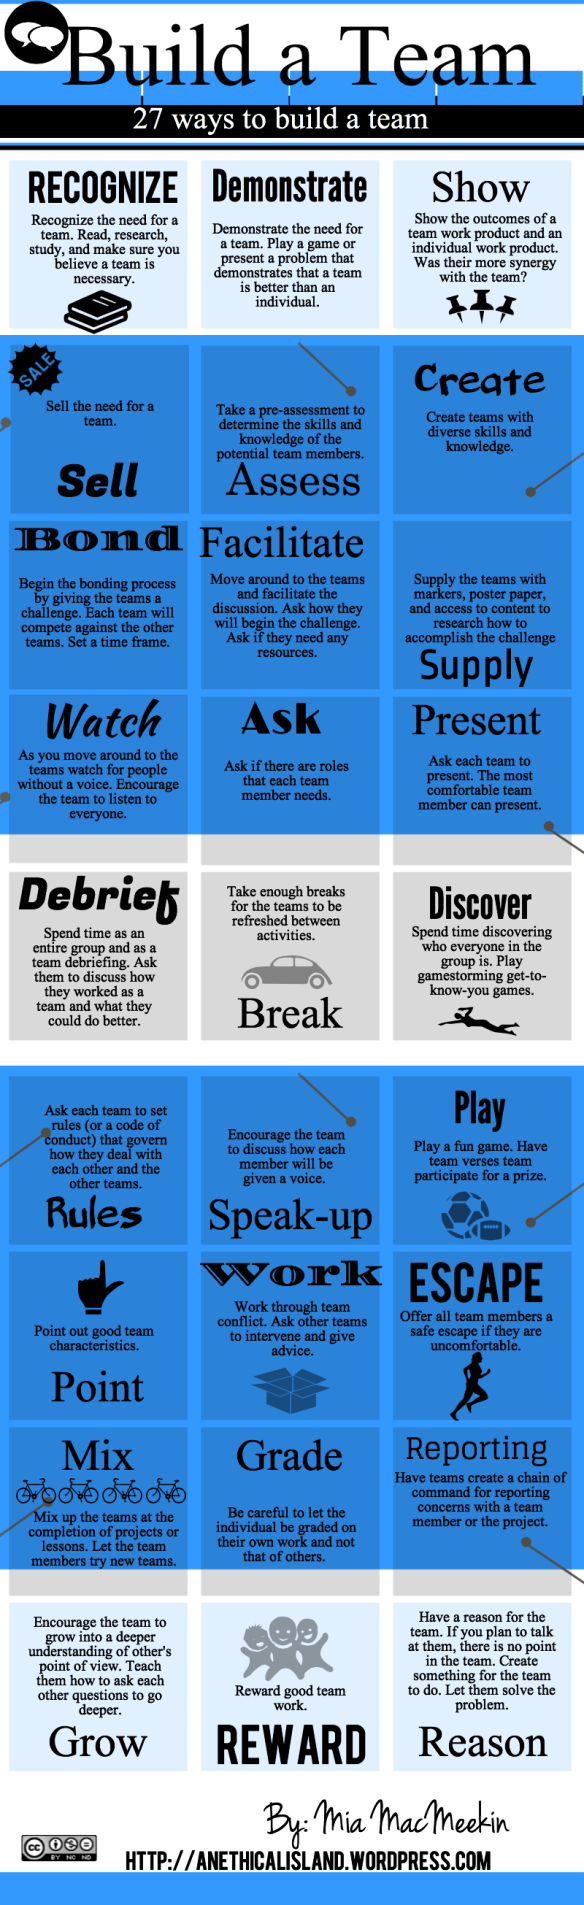 Building A Team Infographic